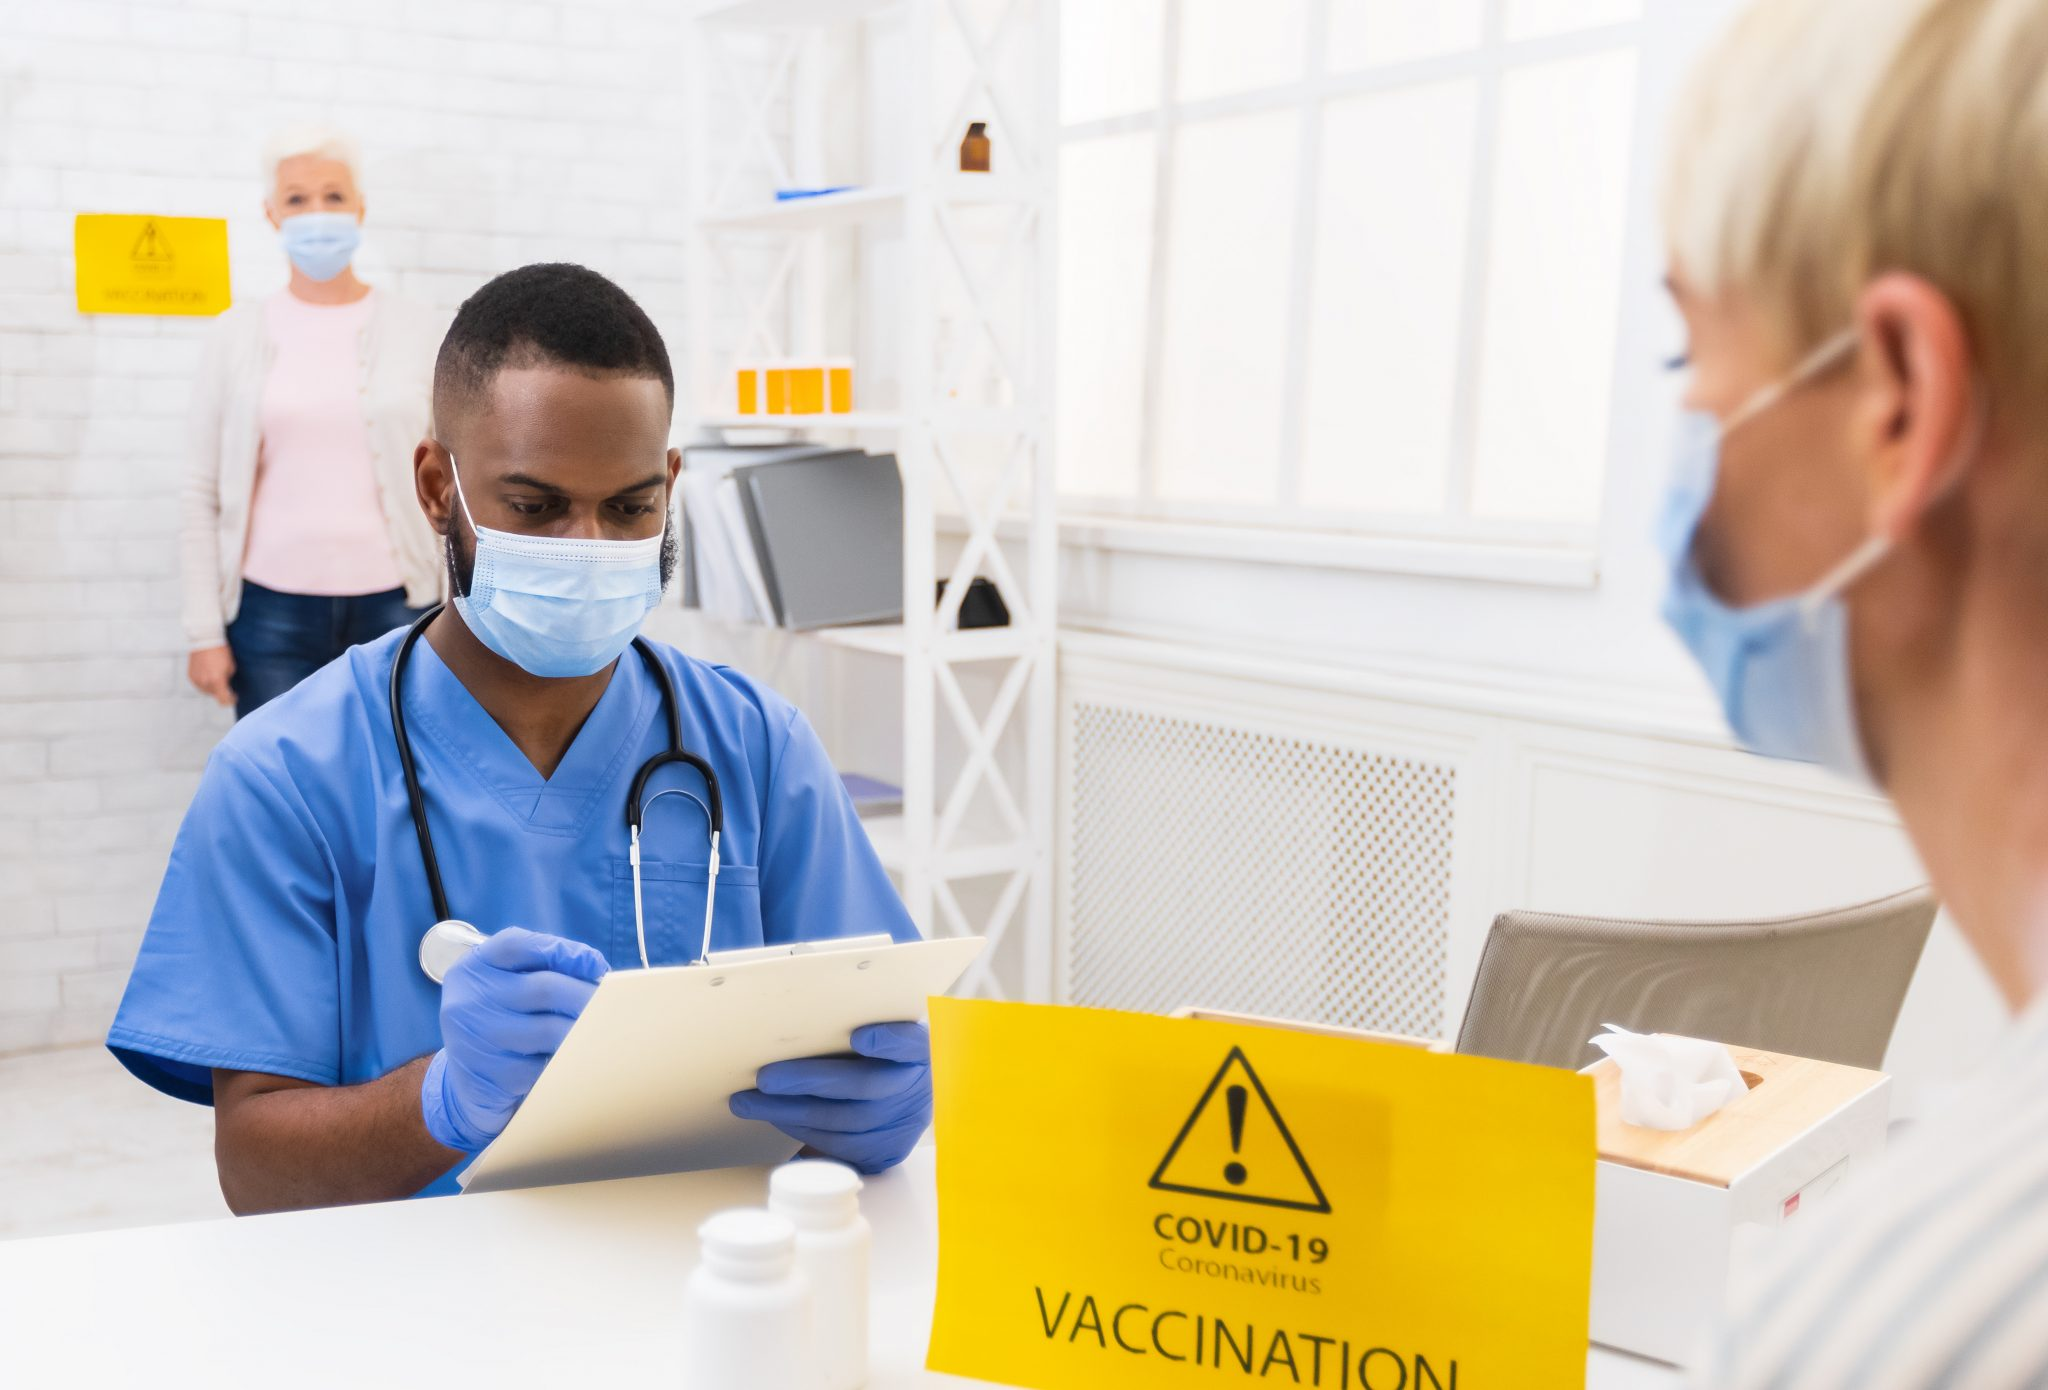 Urging Employers to Support COVID-19 Vaccination for Employees